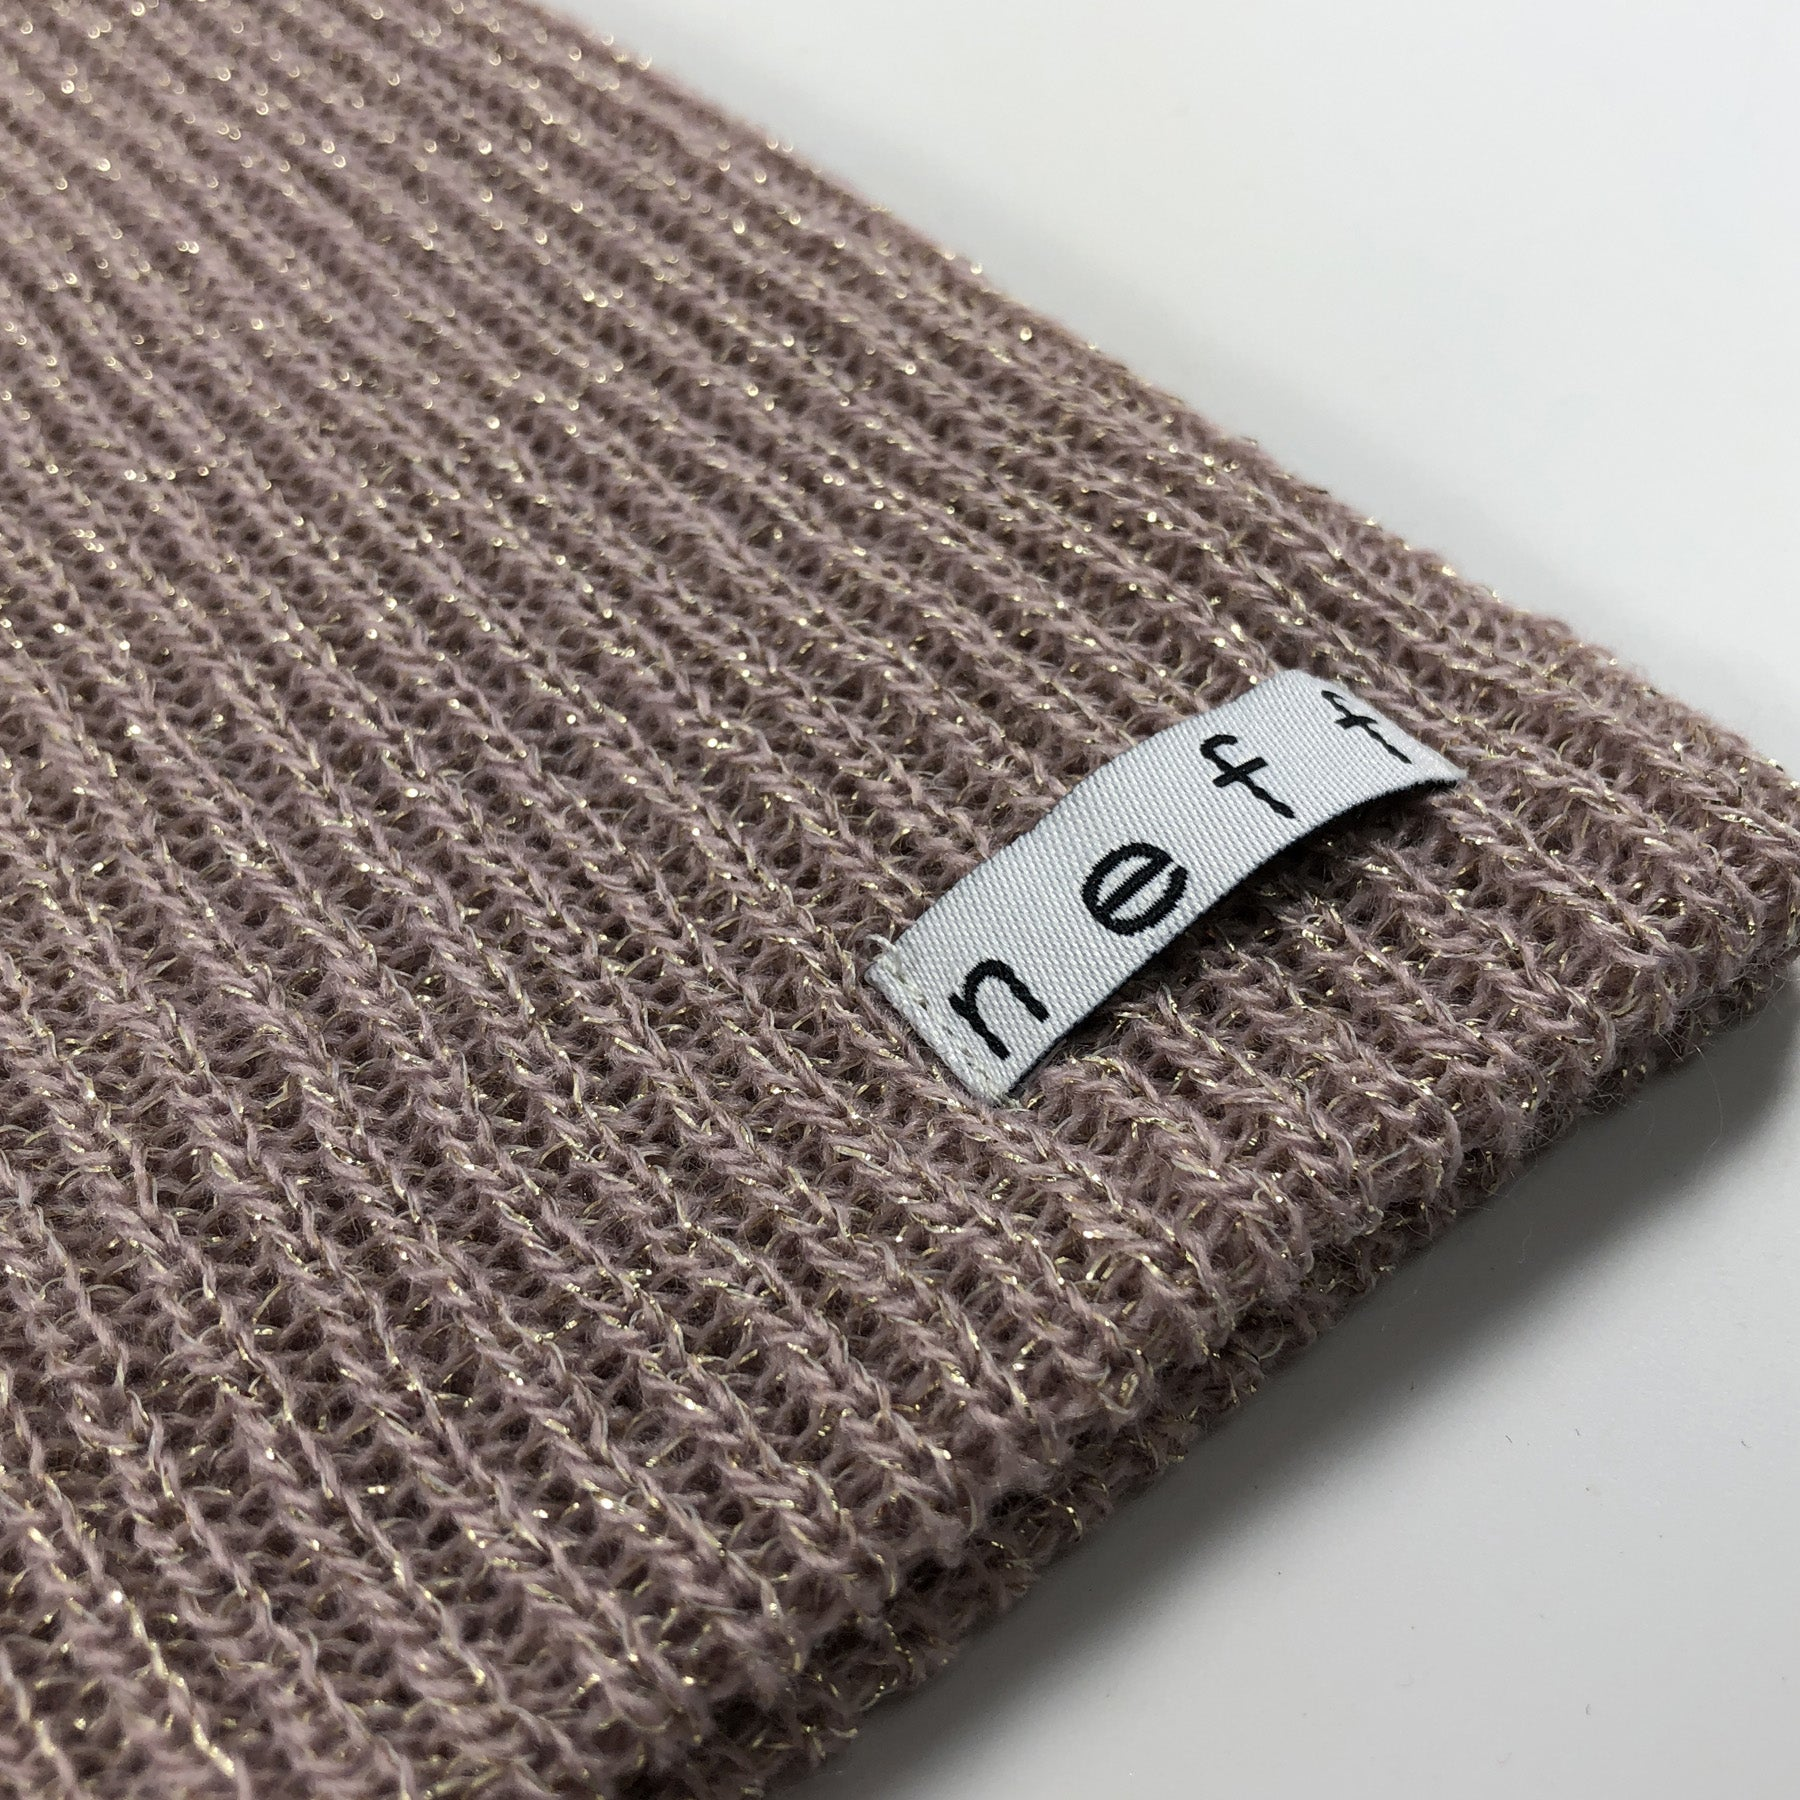 5c219688fd1 ... on the bottom left corner of the neff daily rose gold metallic knit  beanie is the